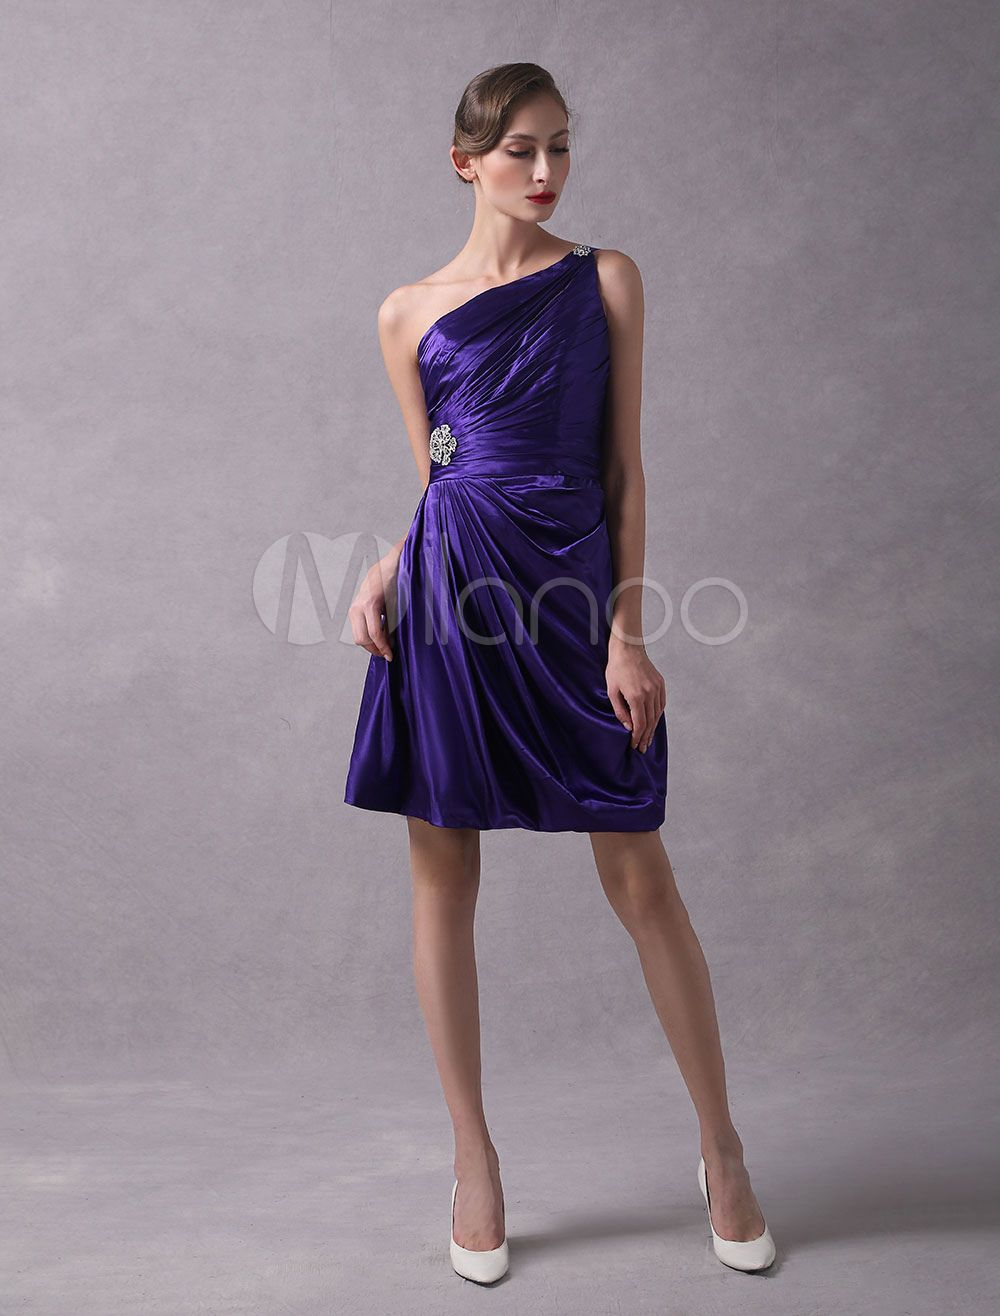 159407f8d09 Short Bridesmaid Dresses One Shoulder Pleated Beaded Royal Purple  Bridesmaid Dress  Dresses